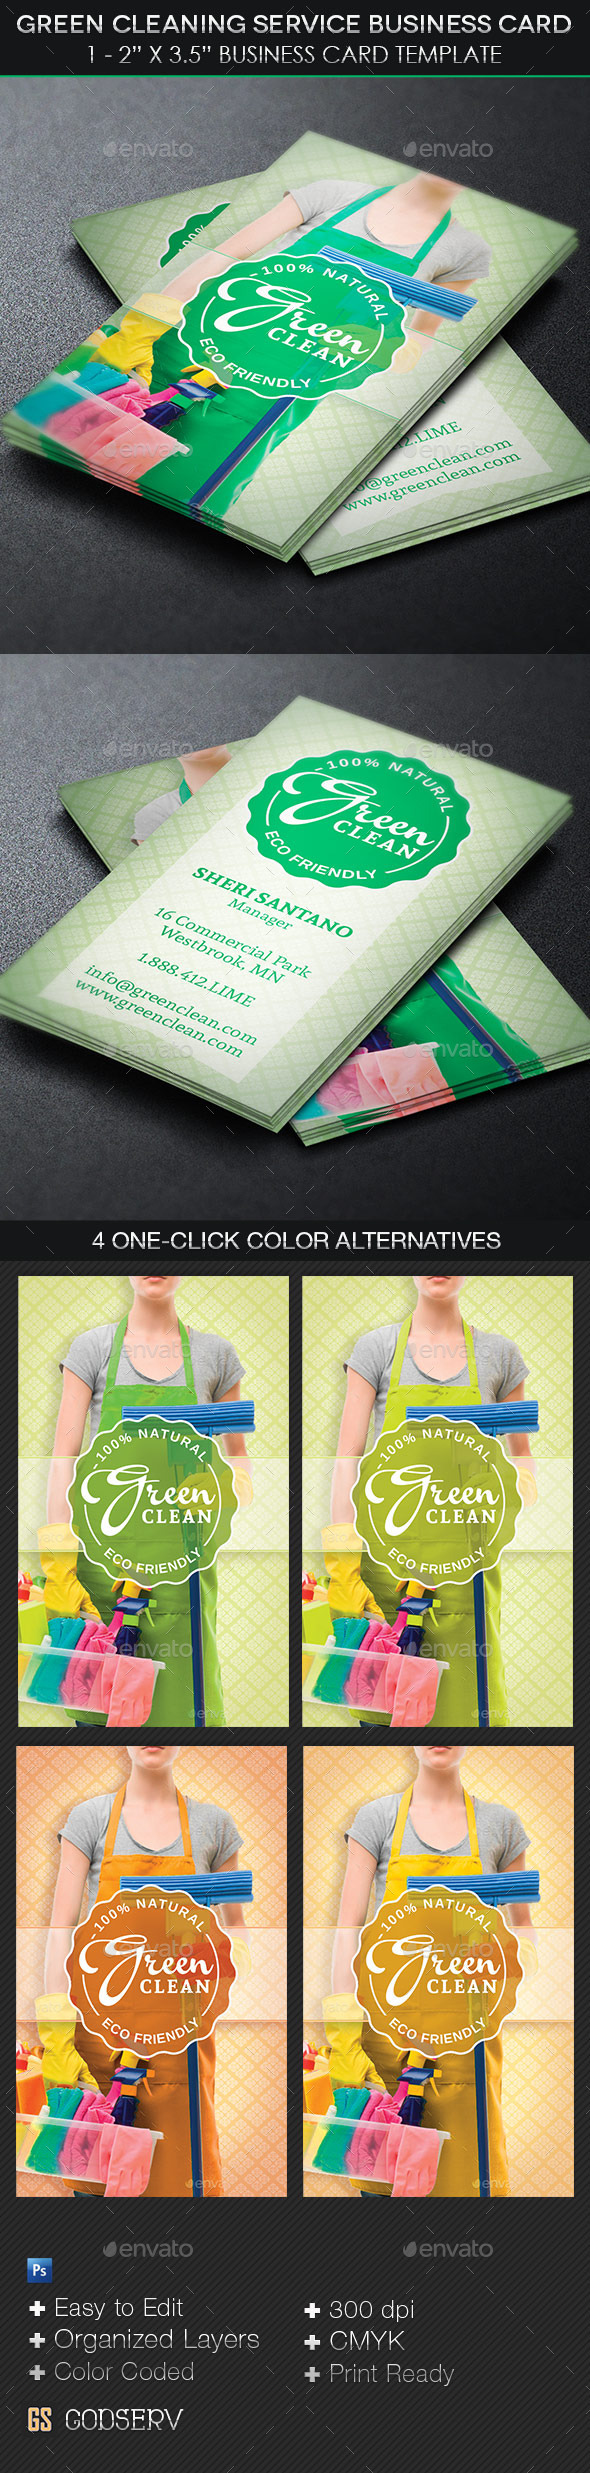 GraphicRiver Green Cleaning Service Business Card Template 11151212